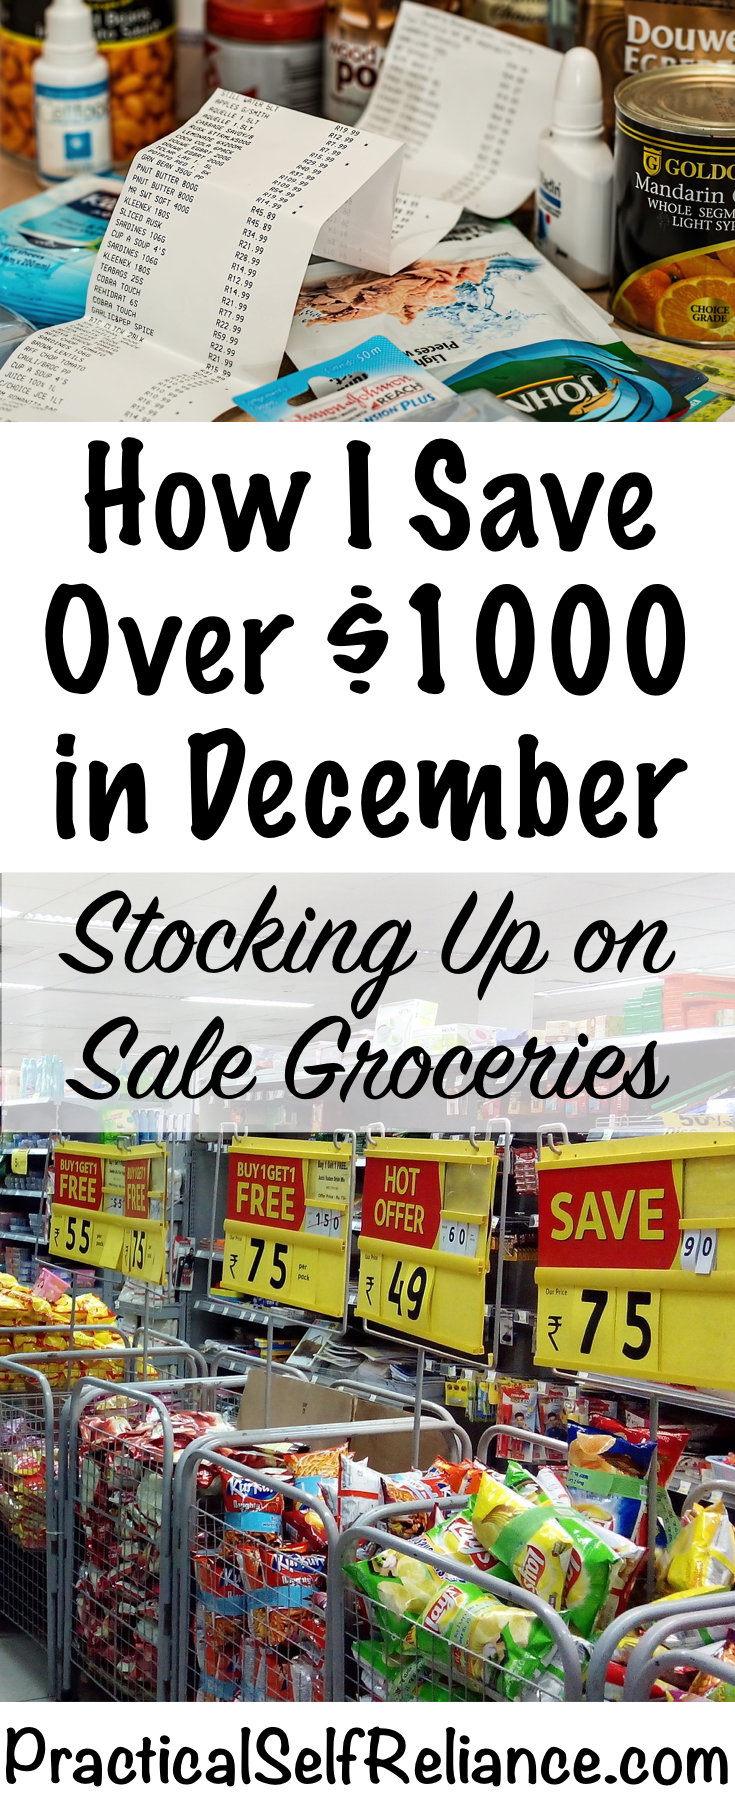 How I Save Over $100 in December by Stocking Up on Sale Groceries #groceryshopping #groceryshoppingtips #frugalliving #savemoney #savemoneyongroceries